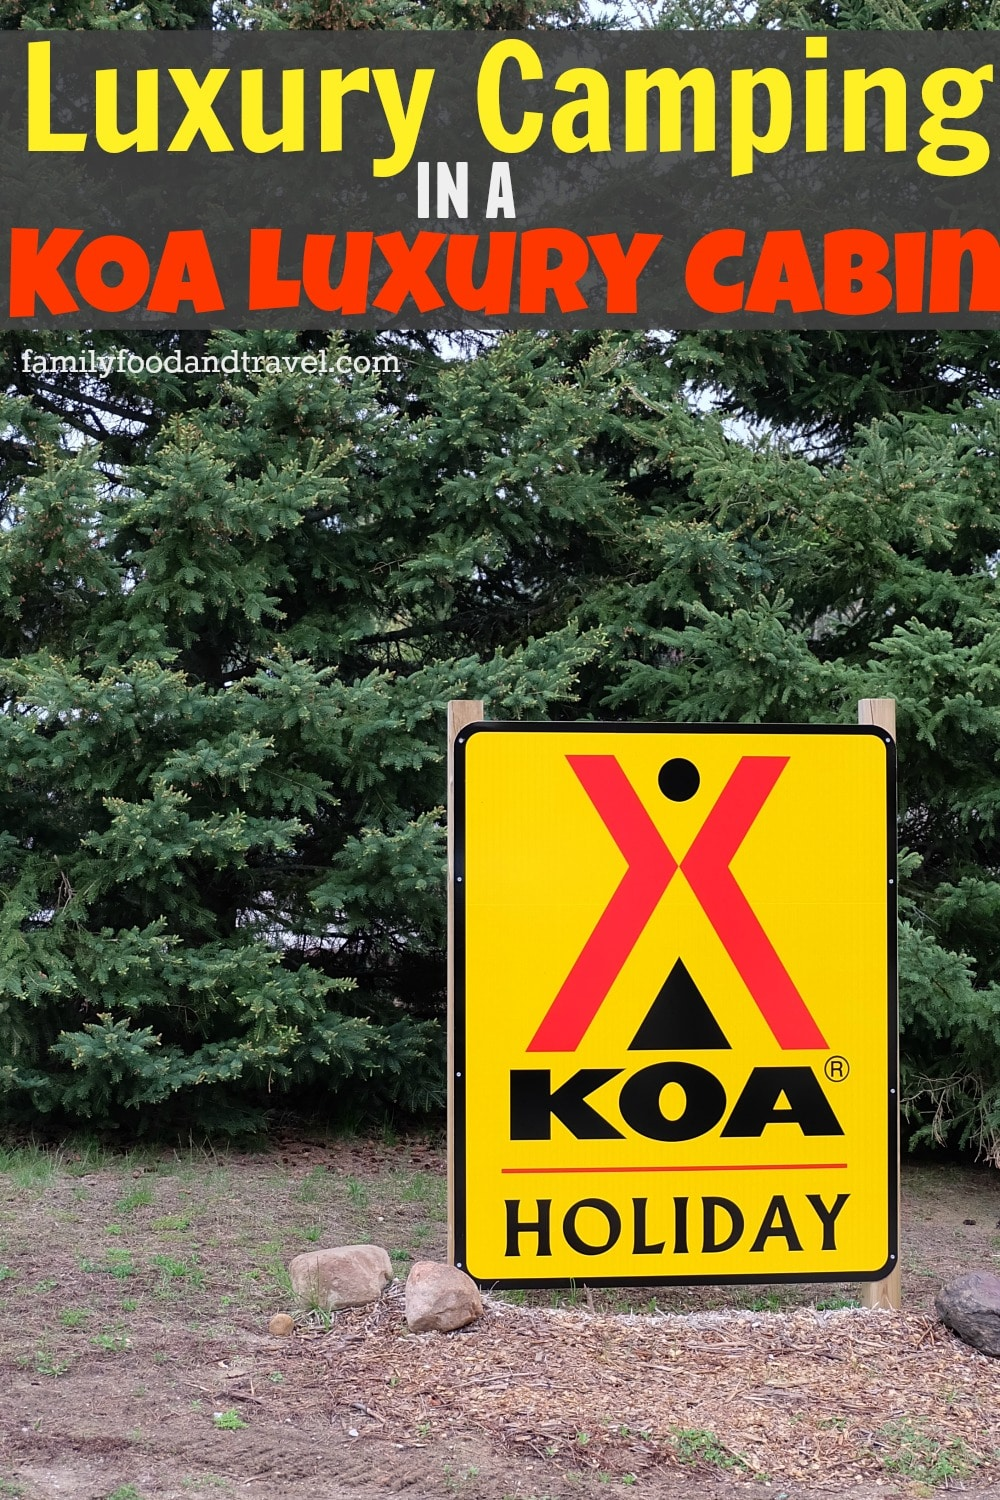 Luxury Camping KOA Luxury Cabin